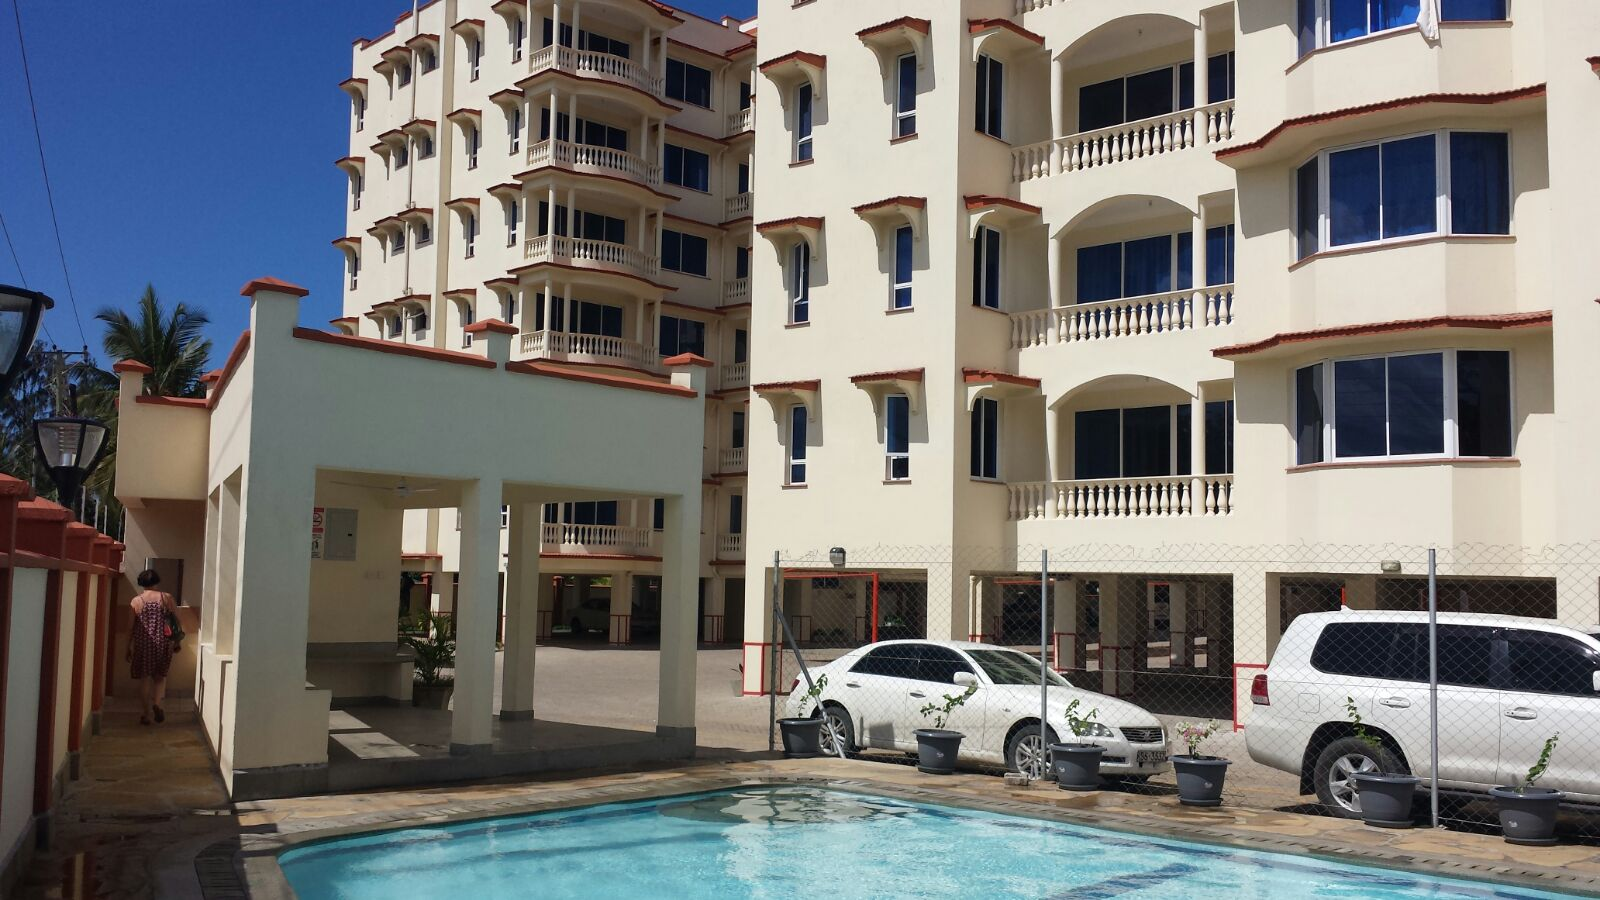 2 br apartment for rent in Nyali, near Naivas & City Mall